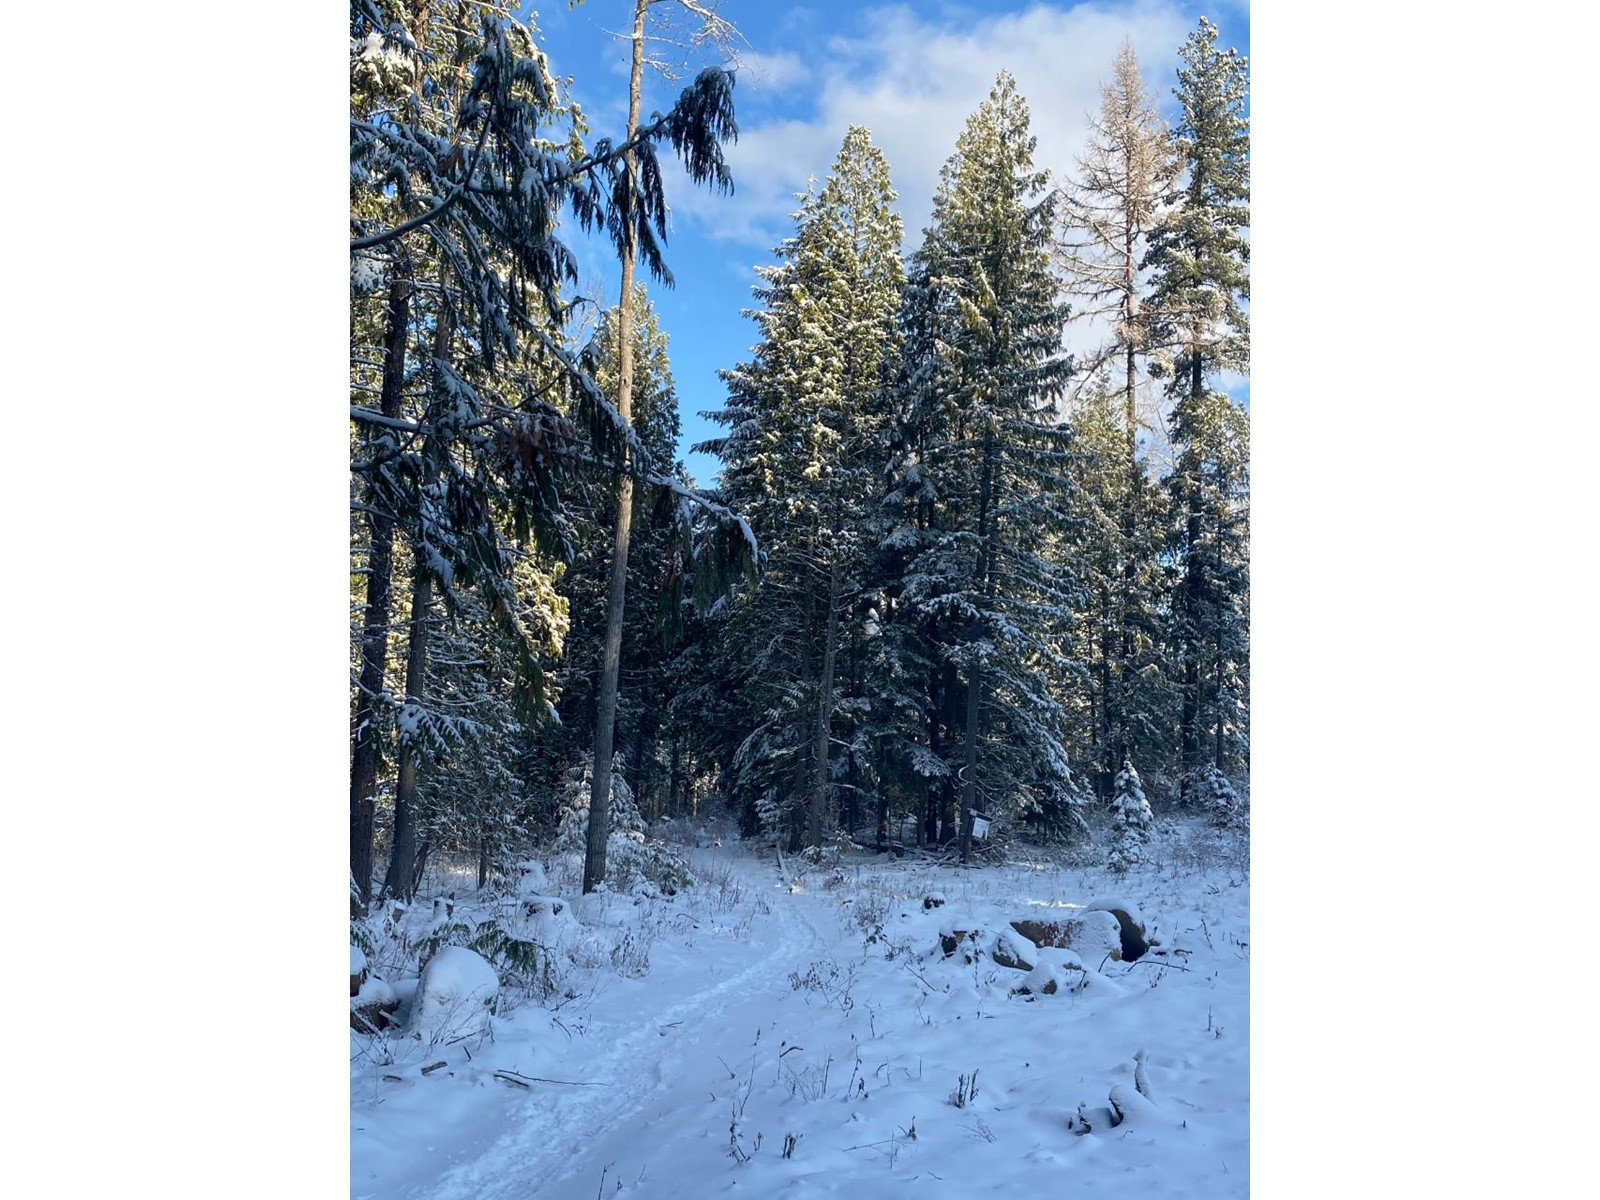 Main Photo: Lot 11 RED MOUNTAIN ROAD in Rossland: Vacant Land for sale : MLS®# 2455889